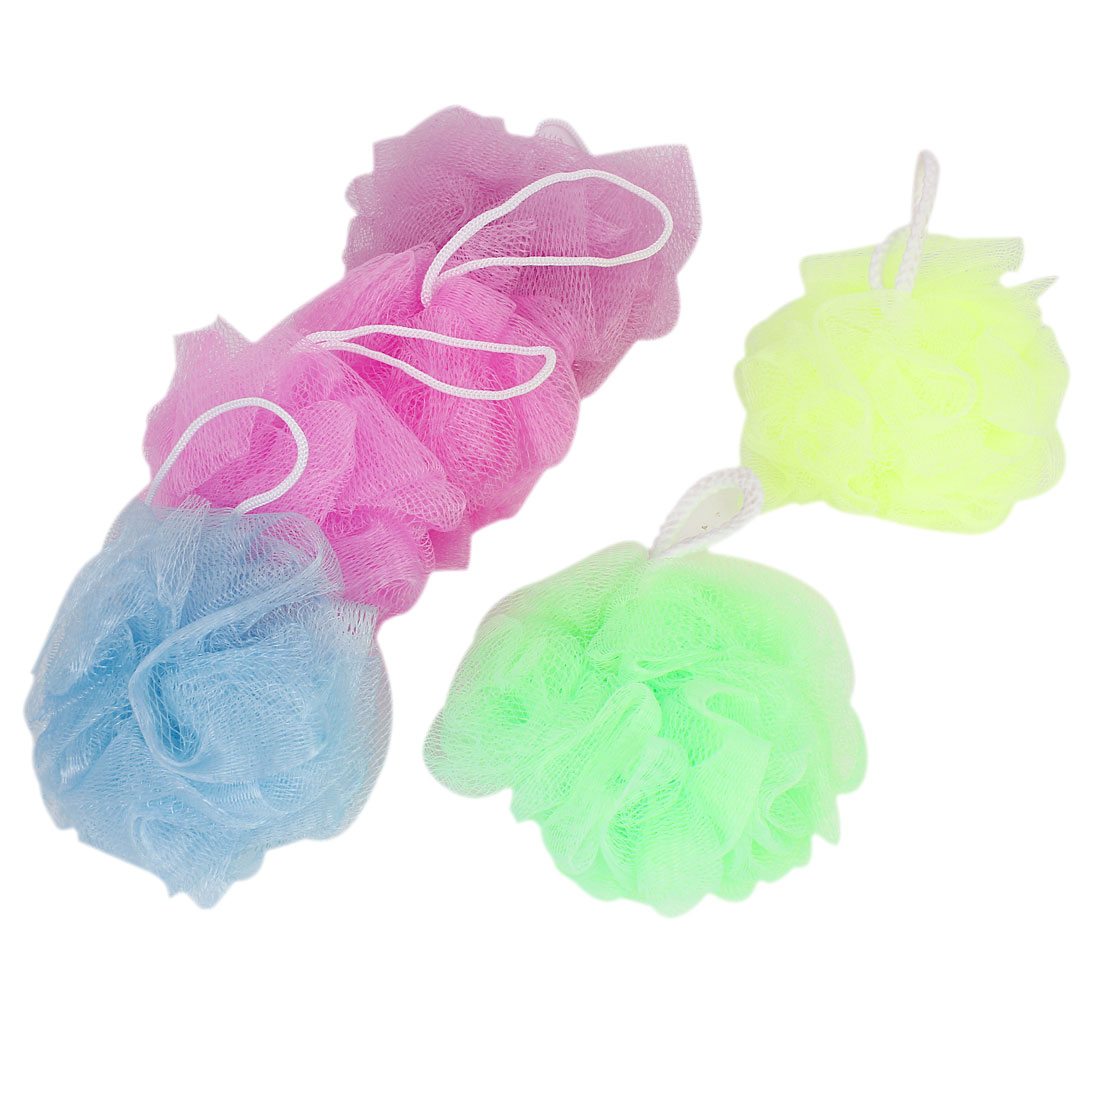 6 Pcs Assorted Color Nylon Mesh Bath Shower Flower Ball w Hanging Loop